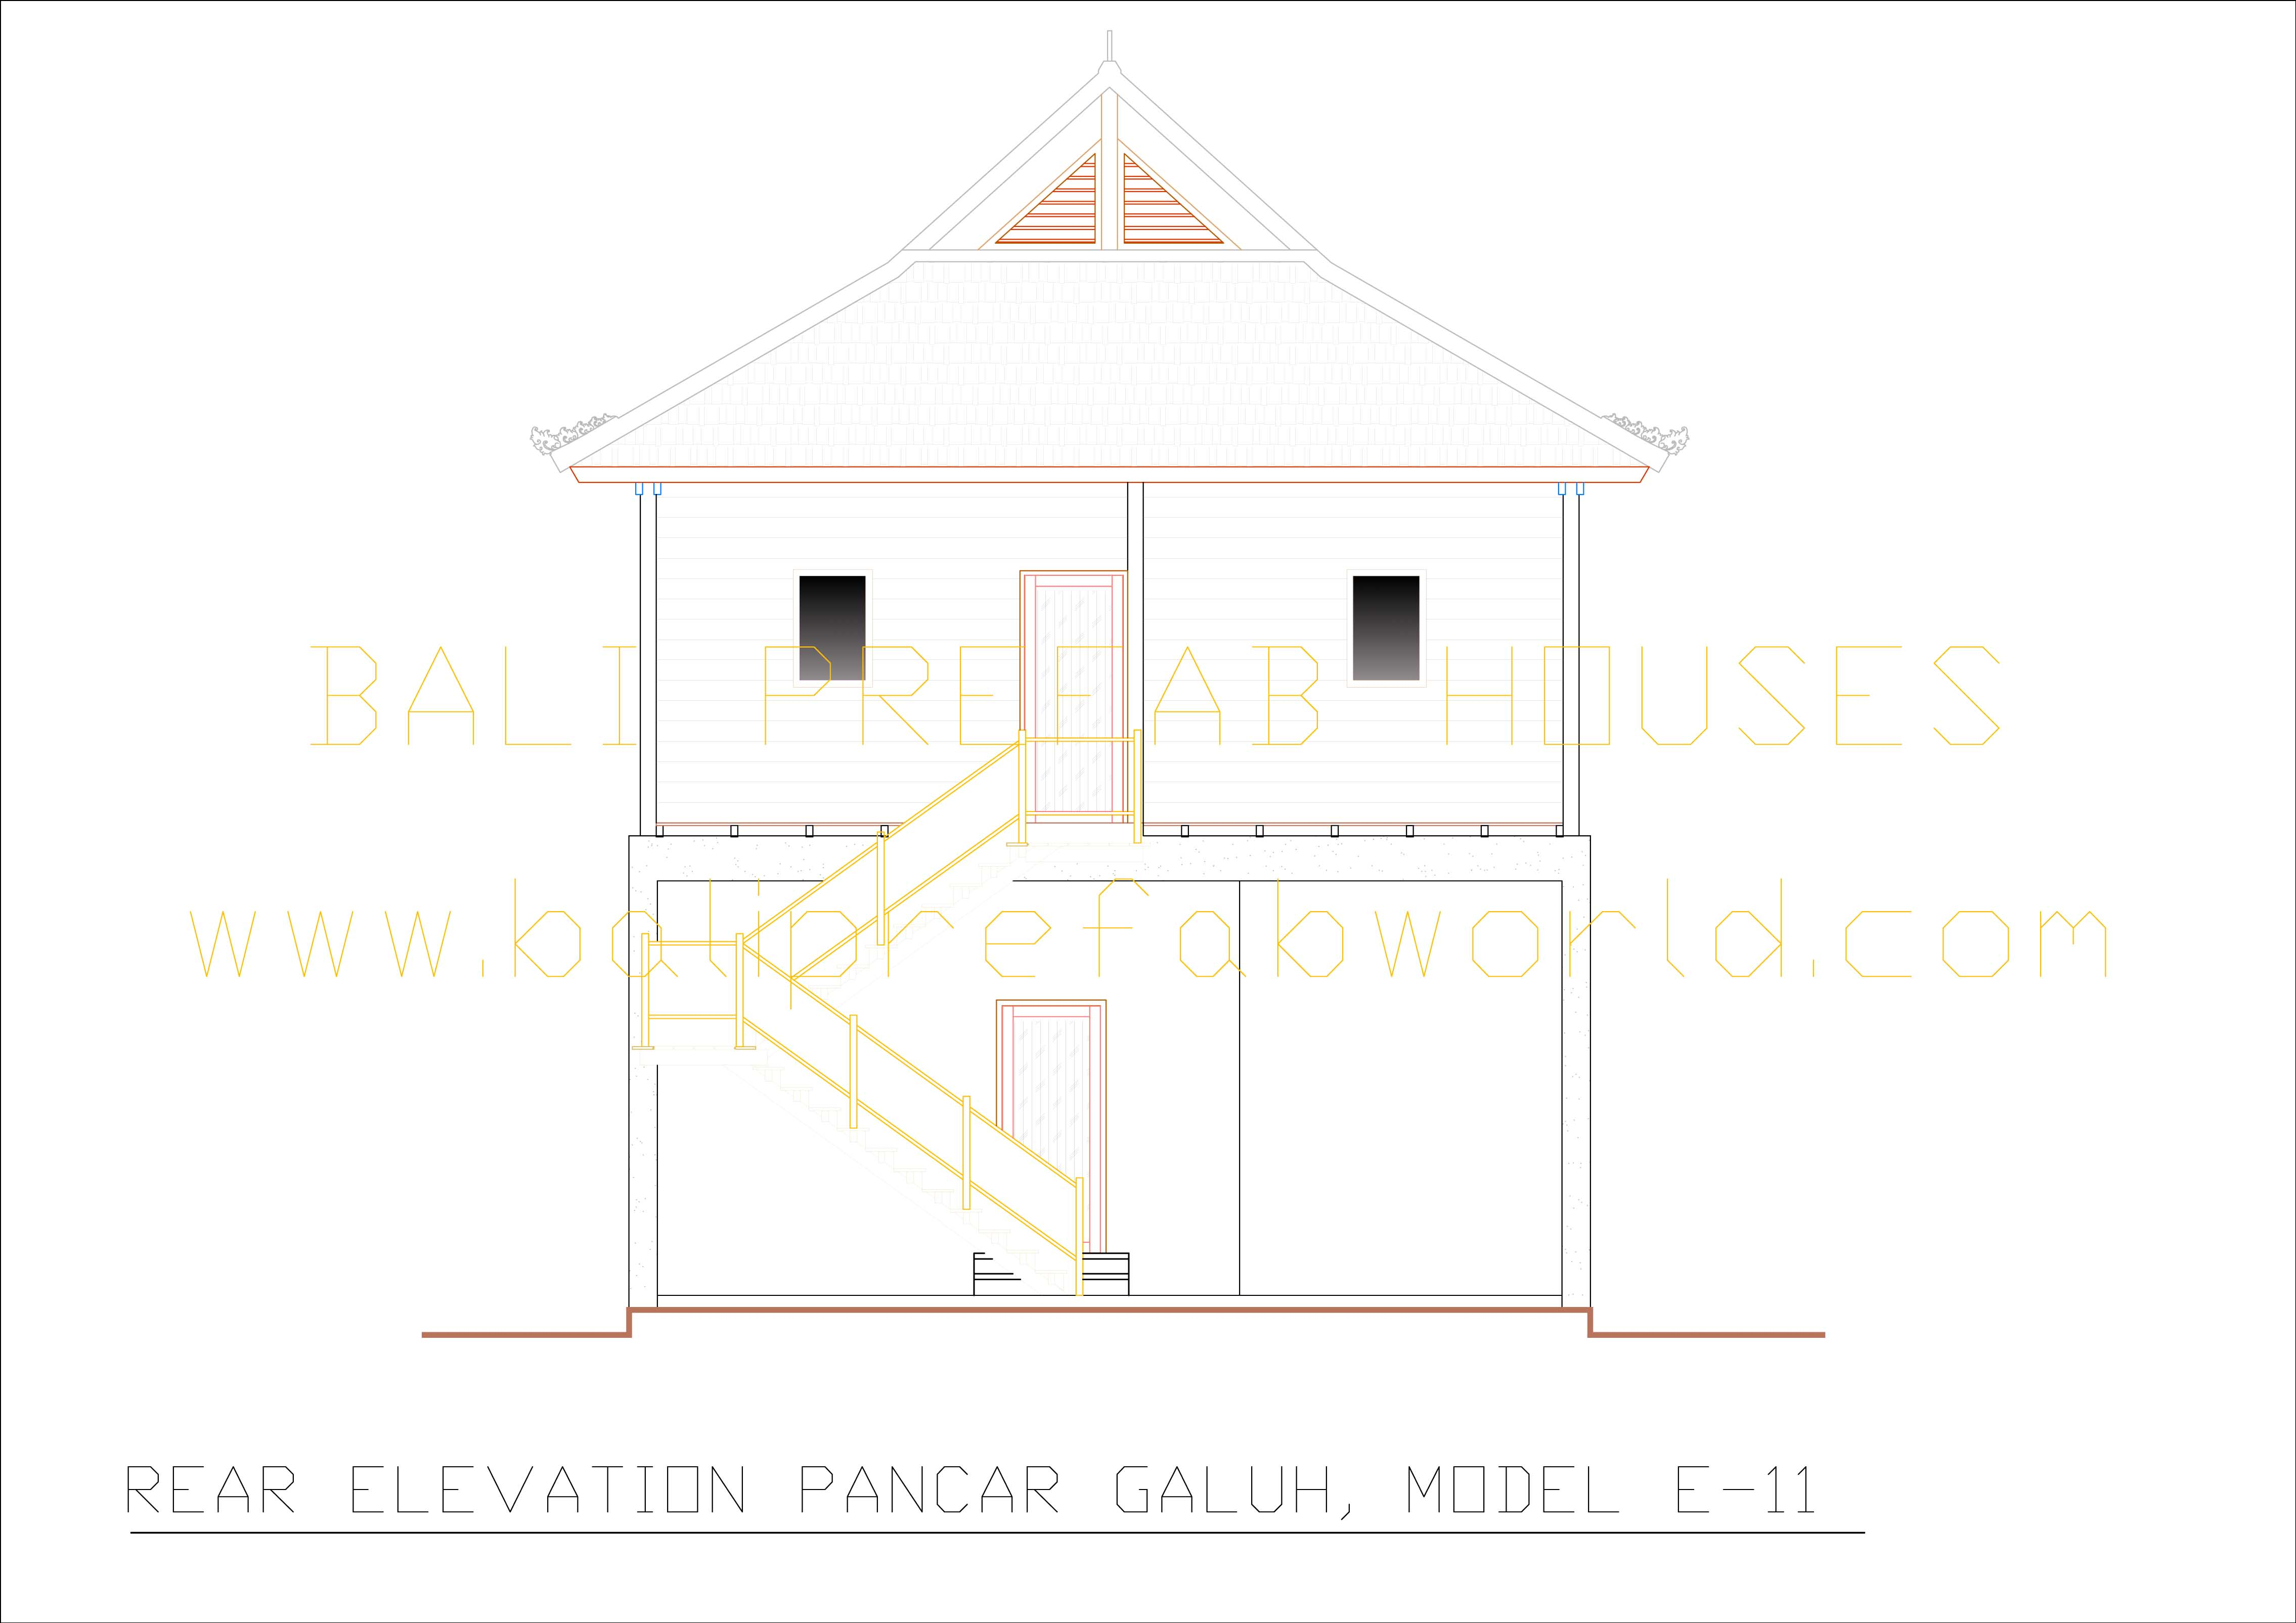 Pancar-Galuh rear elevation